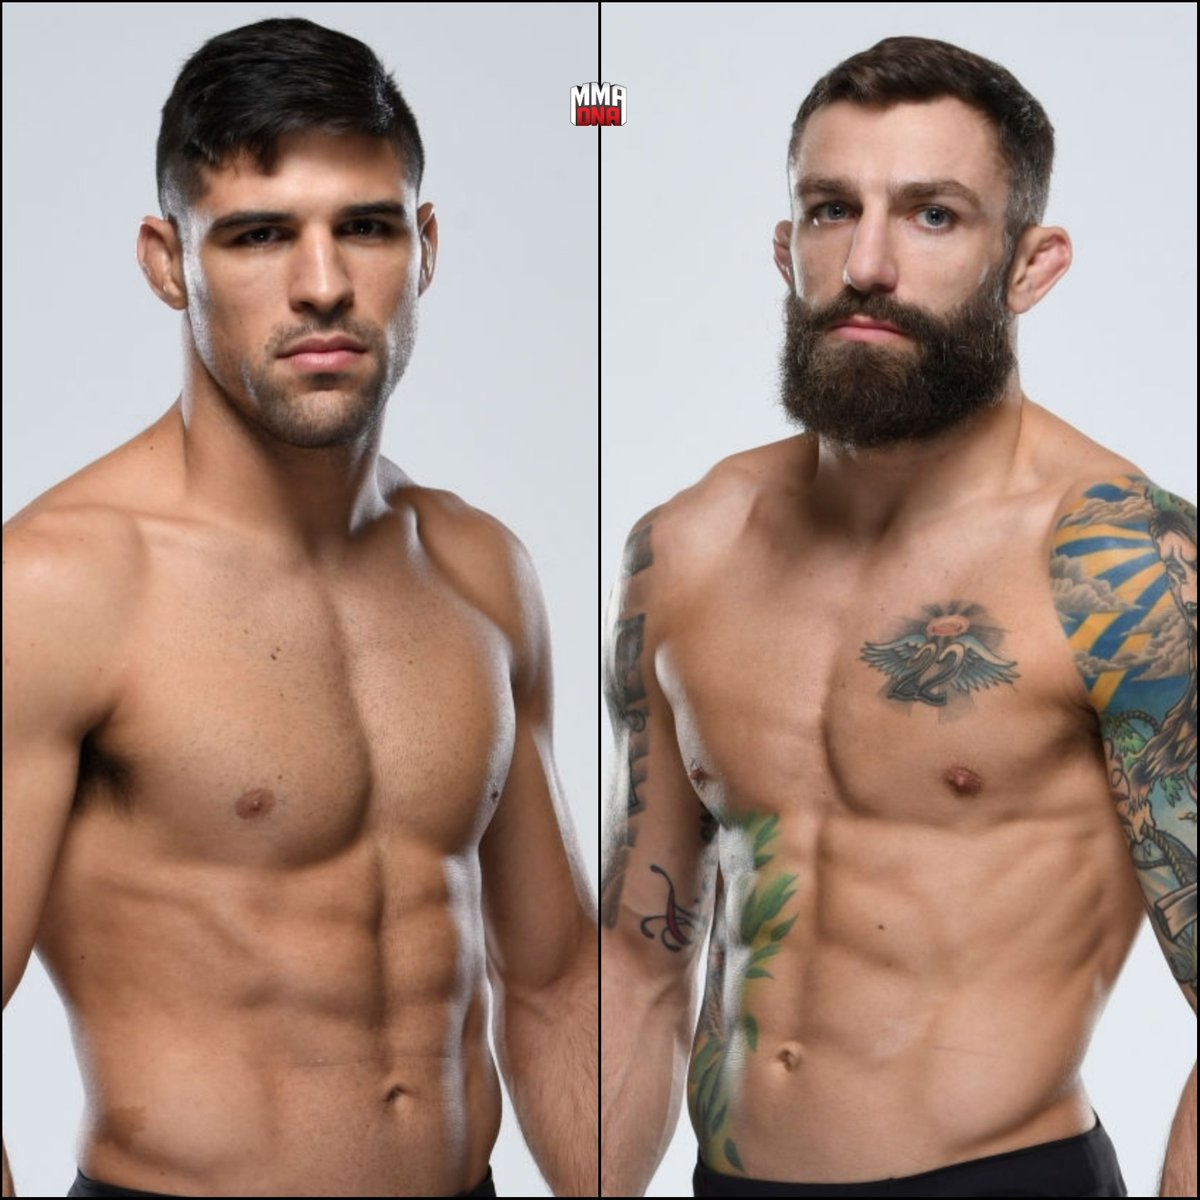 Vicente Luque will fight Michael Chiesa at #UFC265 on August 7th. (first rep. @cprawdzik89) #UFC #MMA #UFCESPN https://t.co/f6RSgJDJMD